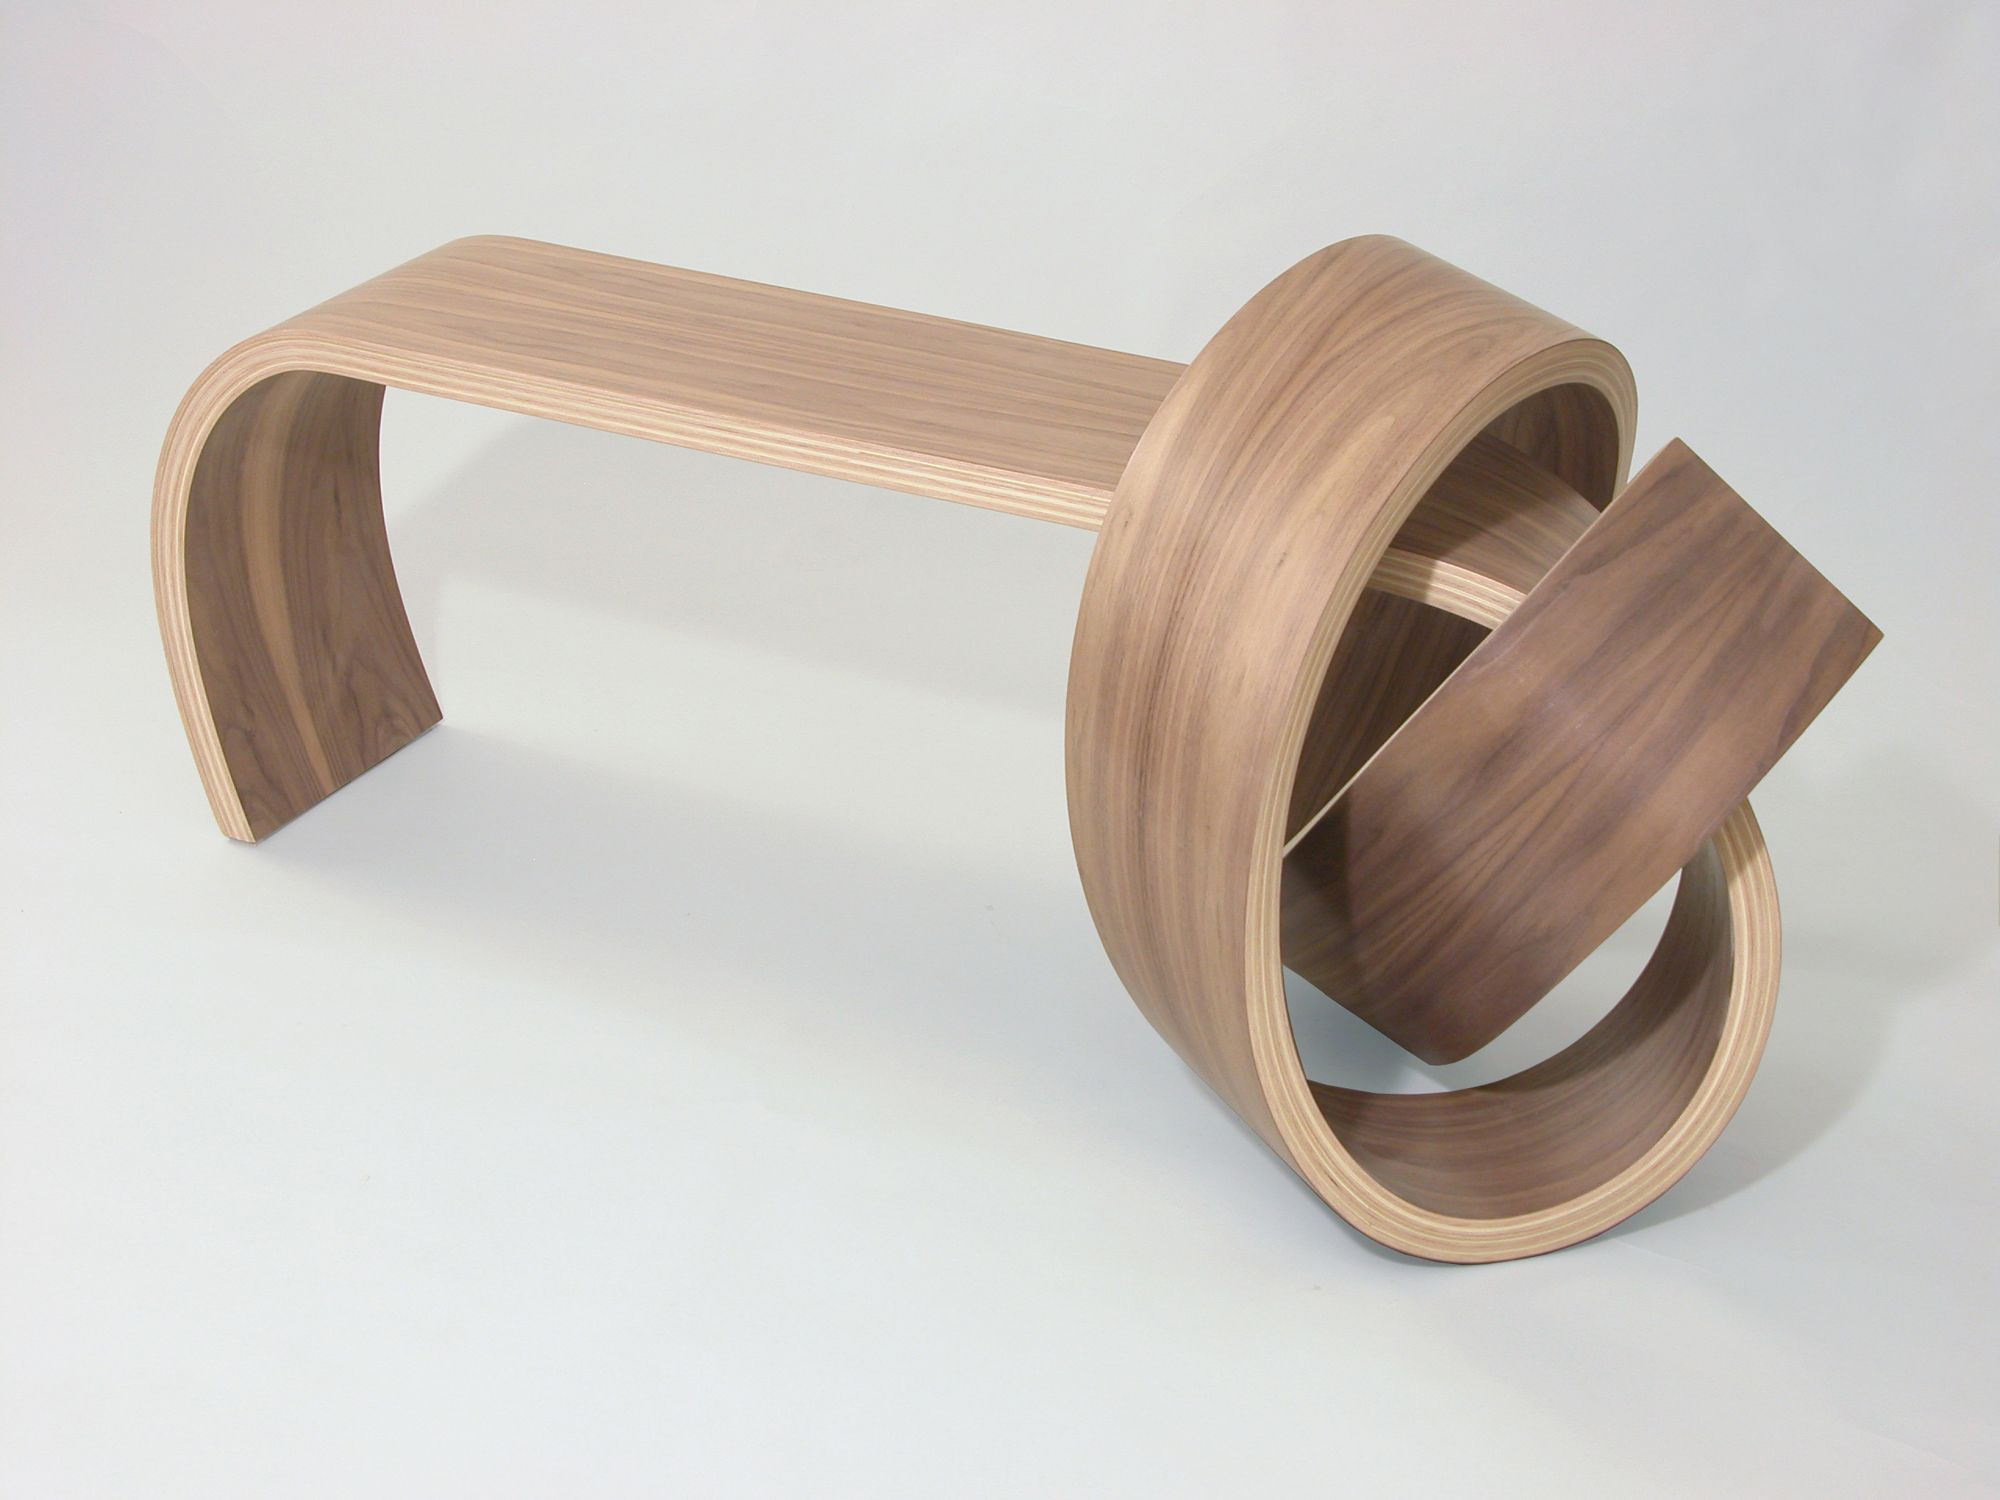 Why Knot Bench by Kino Guerin